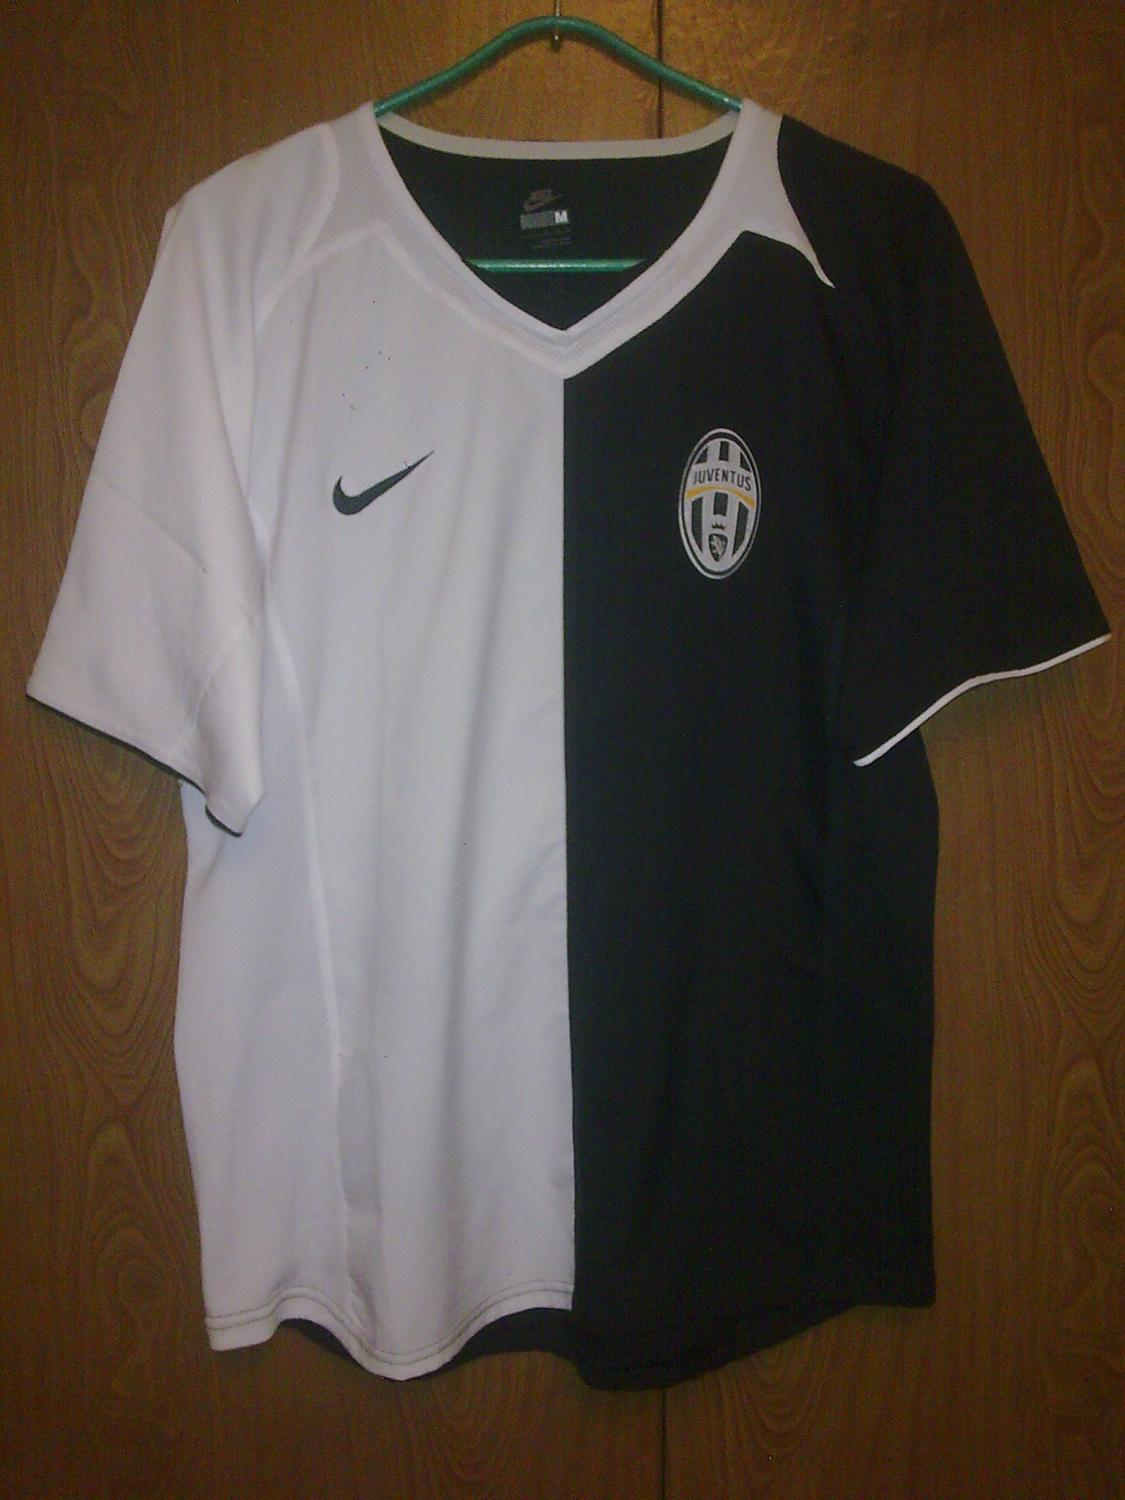 outlet store 82979 fb5c2 Nike Juventus 2005 Half-And-Half Anti-Racism Kit vs Adidas ...